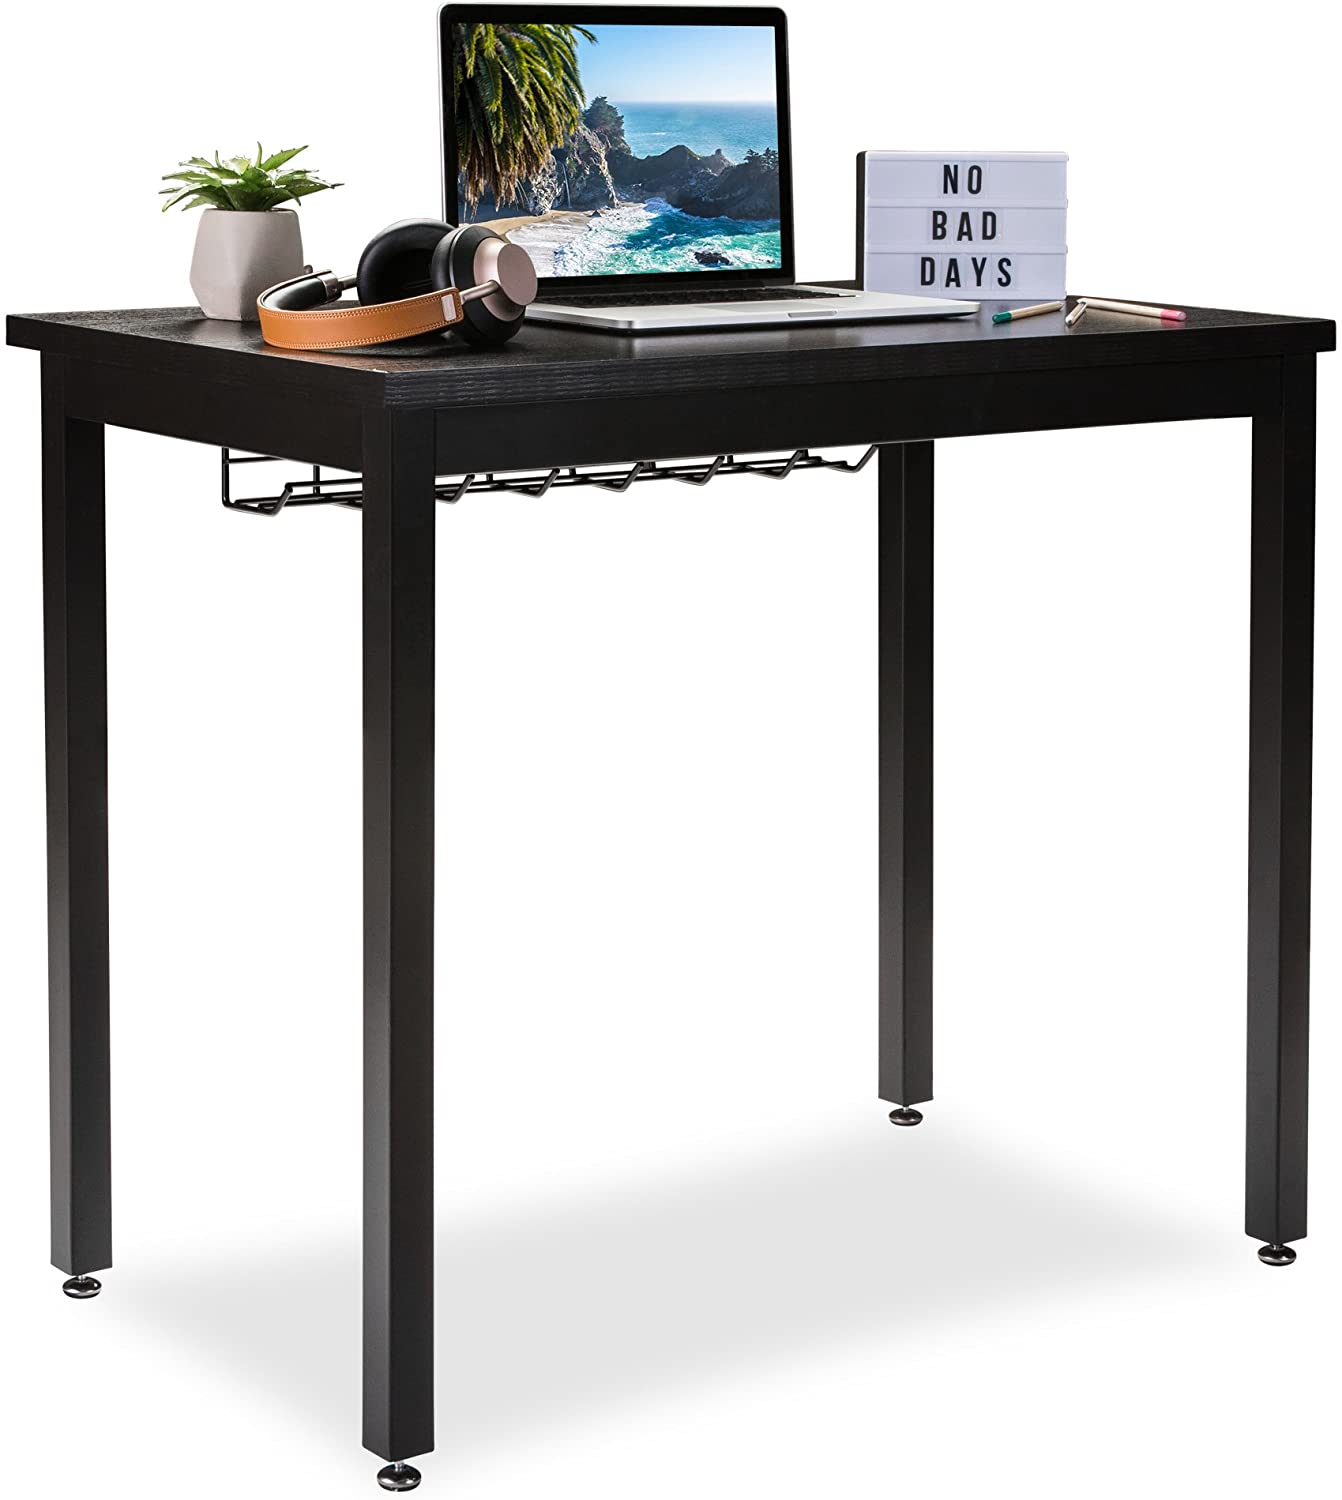 "Small Computer Desk for Home Office - 36"" Length Table w/Cable Organizer- Sturdy and Heavy Duty Writing Desk for Small Spaces and Students Laptop Use - Damage-Free Promise (Black)"